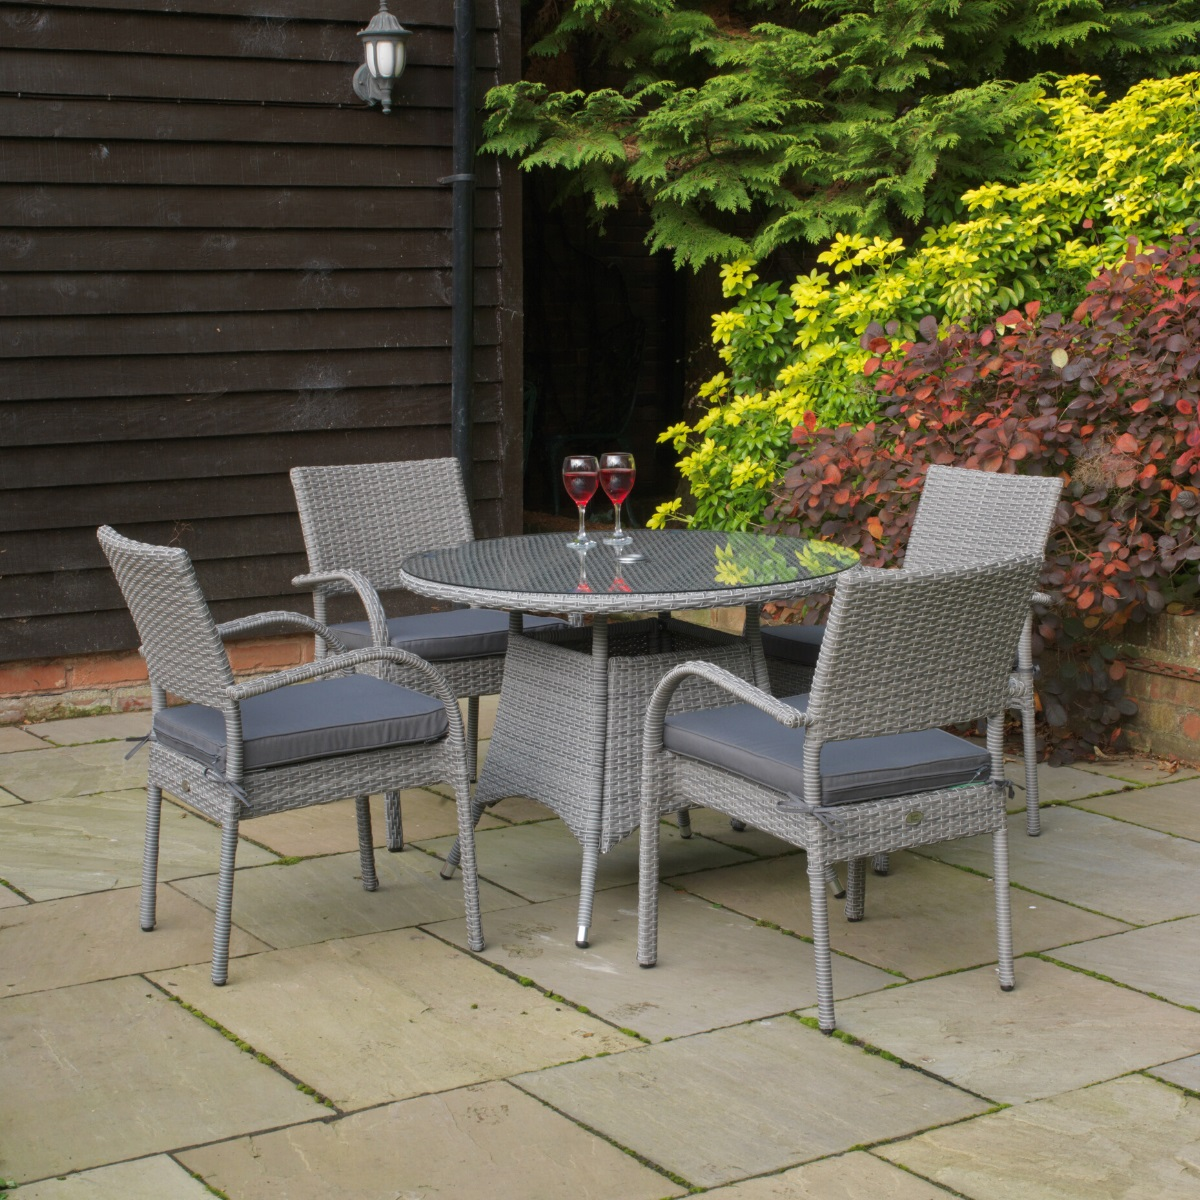 A round grey rattan patio table and matching dining armchairs arranged on a patio